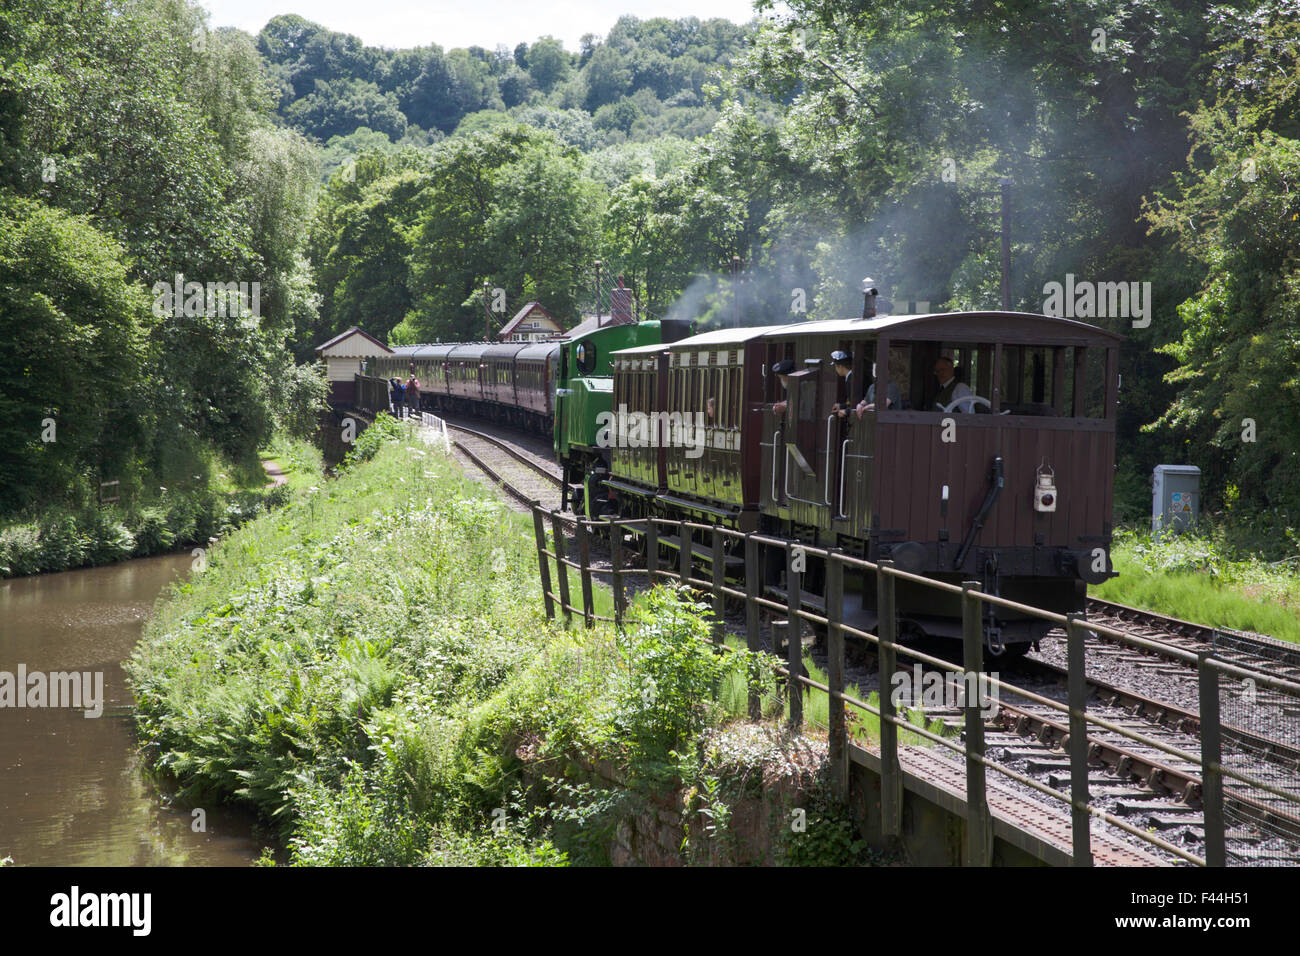 Vintage train hauled by a steam locomotive at Consall Station on The Churnet Valley Railway Staffordshire England - Stock Image